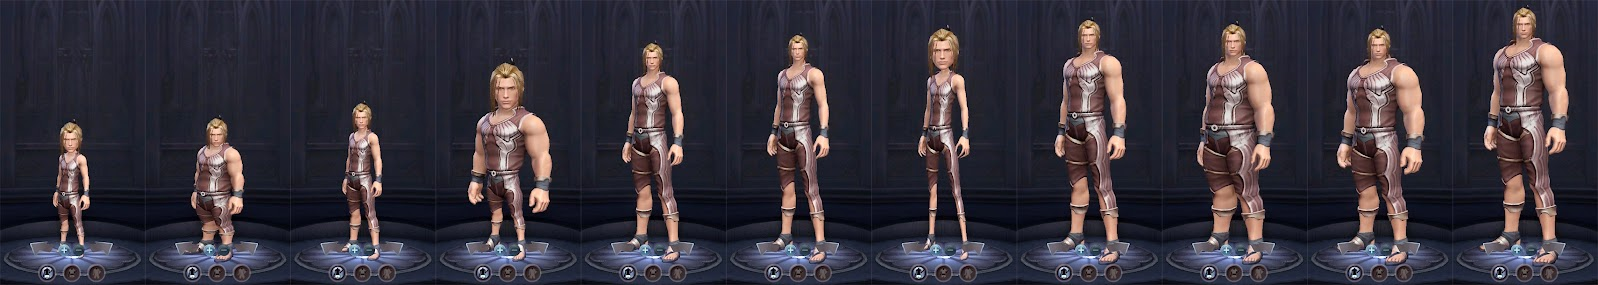 Aion Male Physique